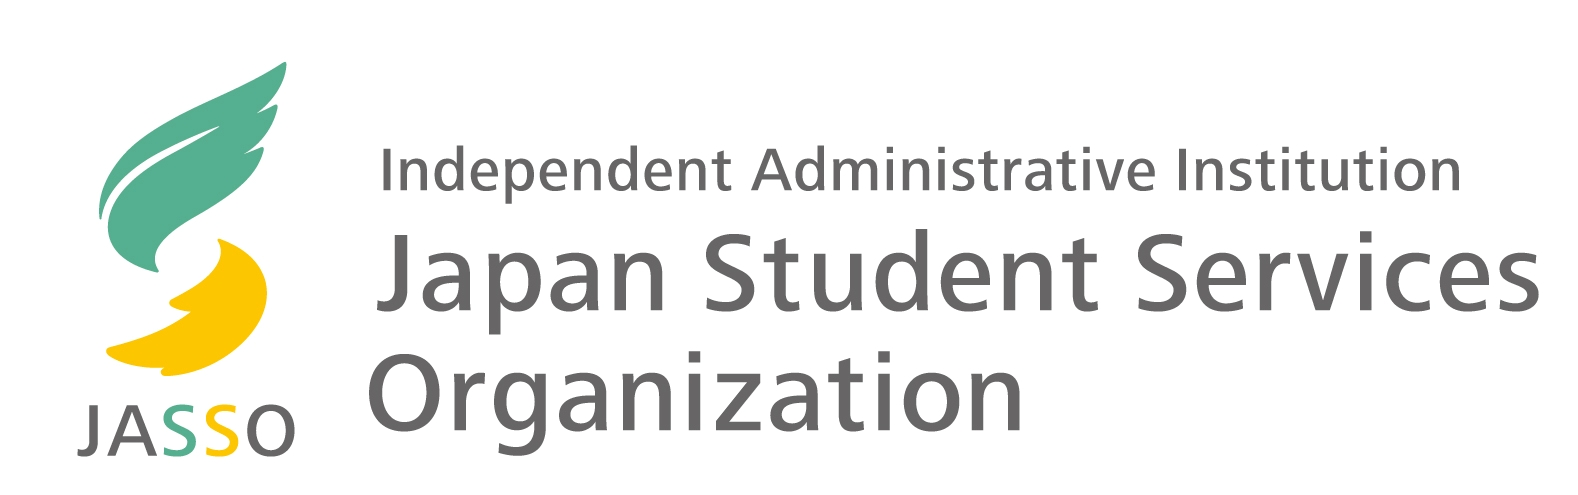 jasso student services japan